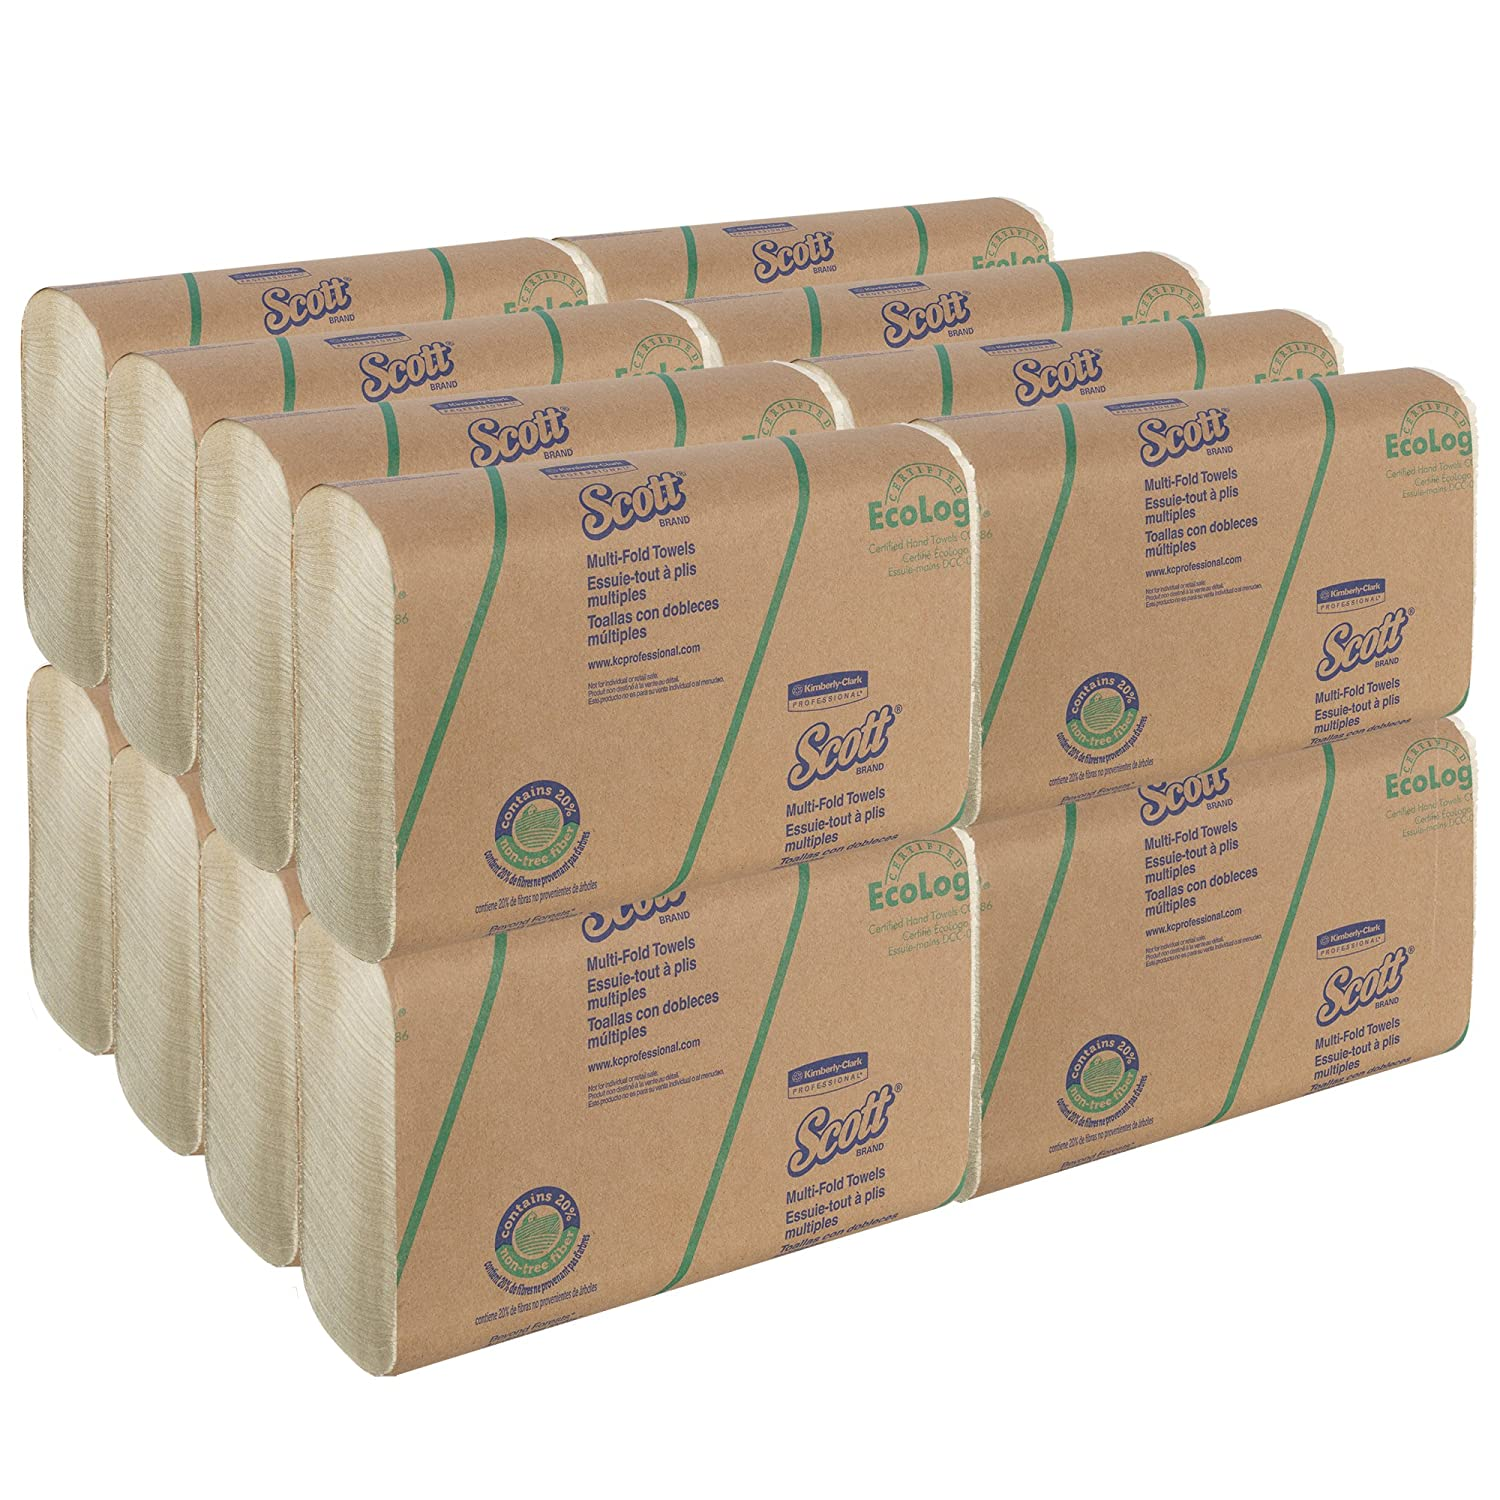 Amazon.com: Scott Multifold Paper Towels (11829) with 20% Alternative Fiber, Soft Wheat, 250 / Pack, 16 Packs/Case, 4,000 Sheets: Industrial & Scientific